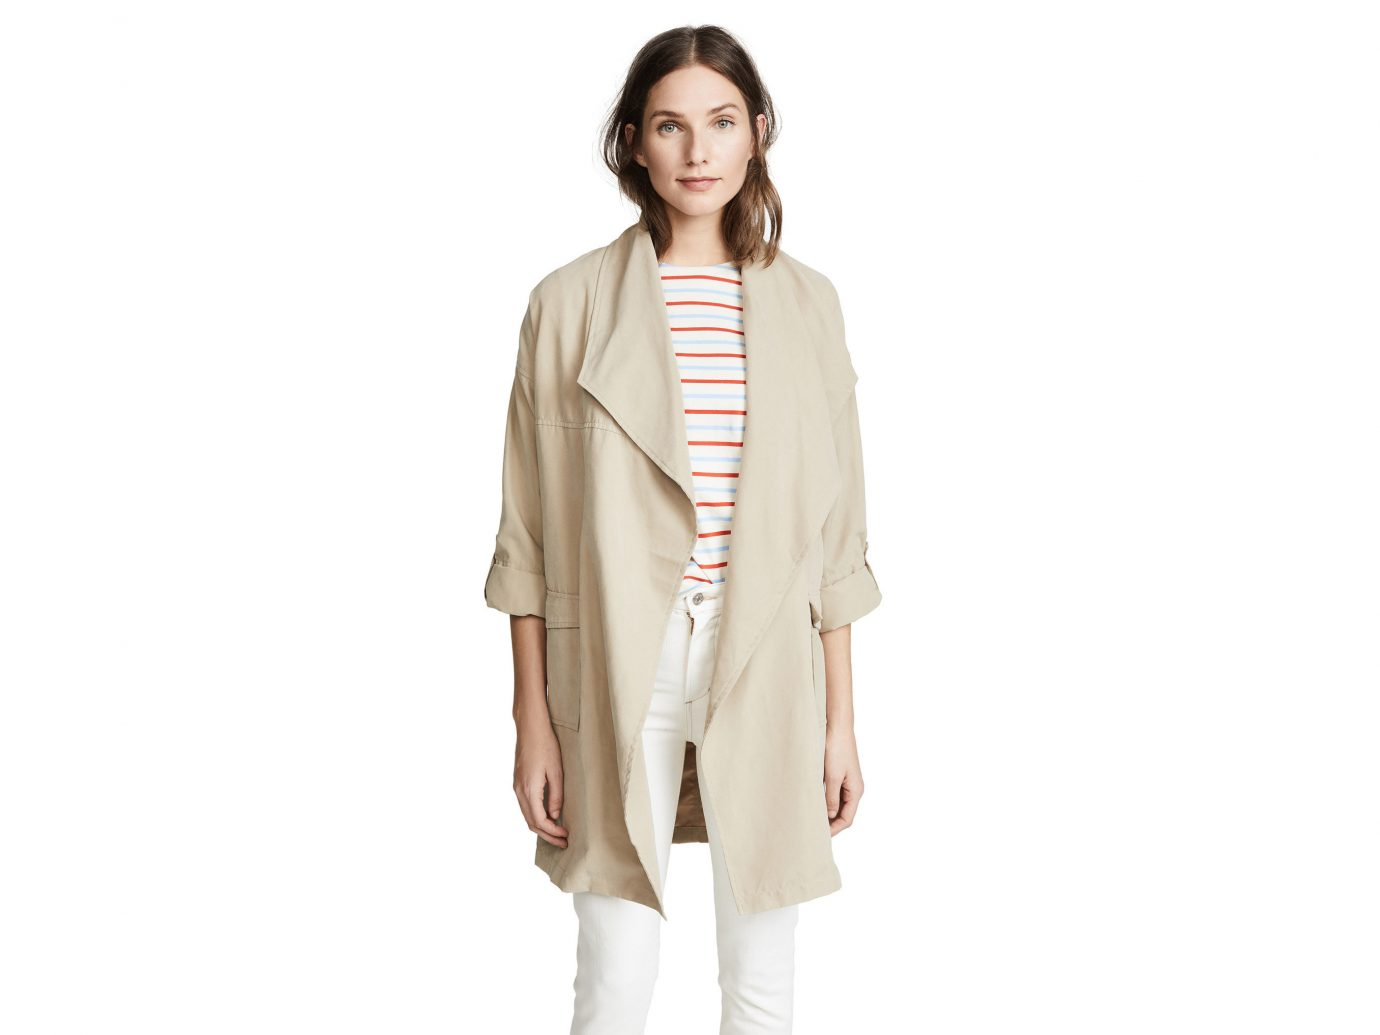 Packing Tips Spring Travel Style + Design Travel Shop clothing wearing posing person standing coat outerwear fashion model suit costume beige neck dressed